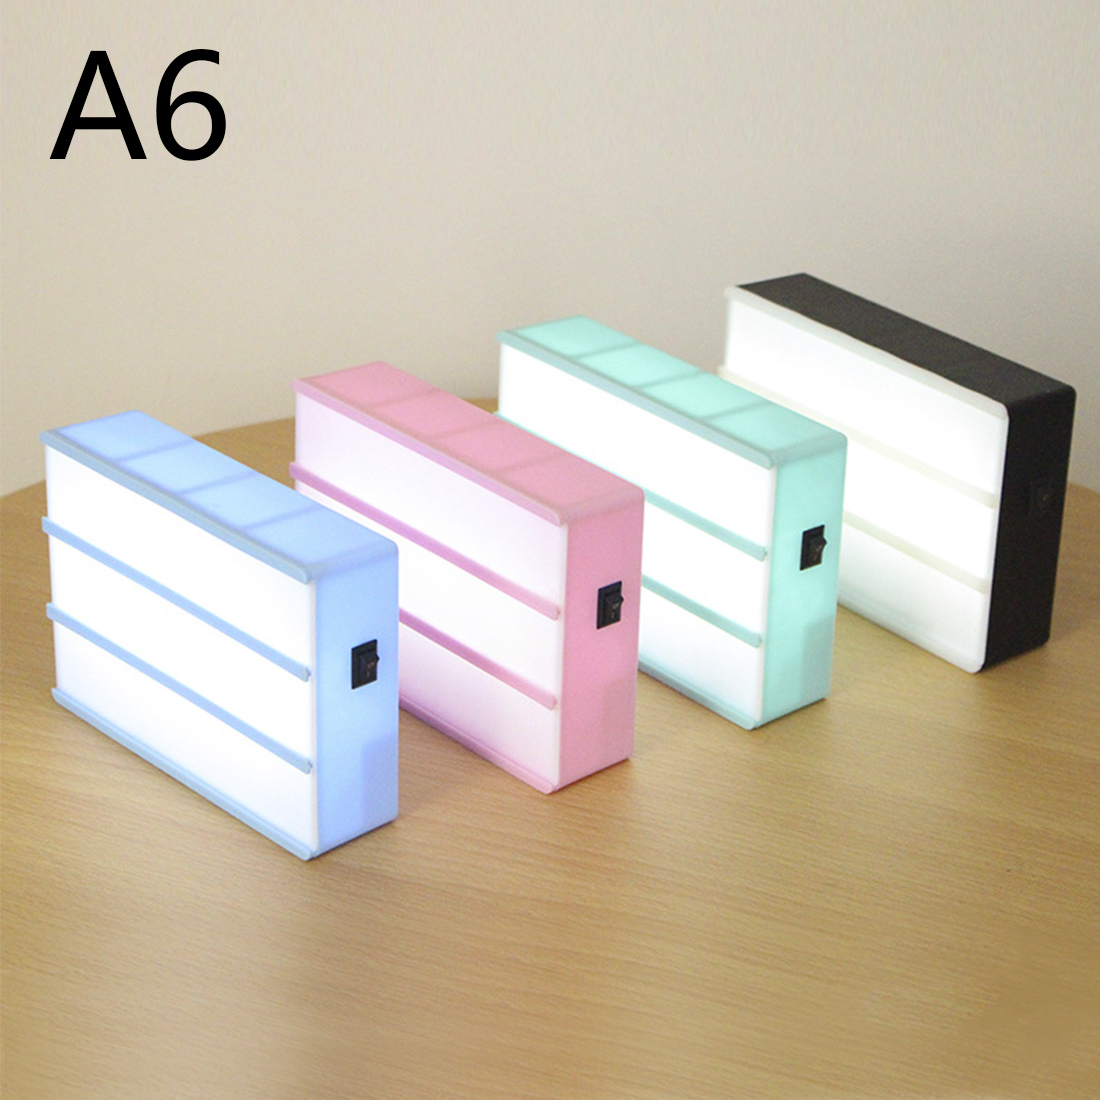 LED Combination Night Light Box Lamp A4 A6 Size DIY BLACK Letters Cards USB PORT Powered Cinema Lightbox